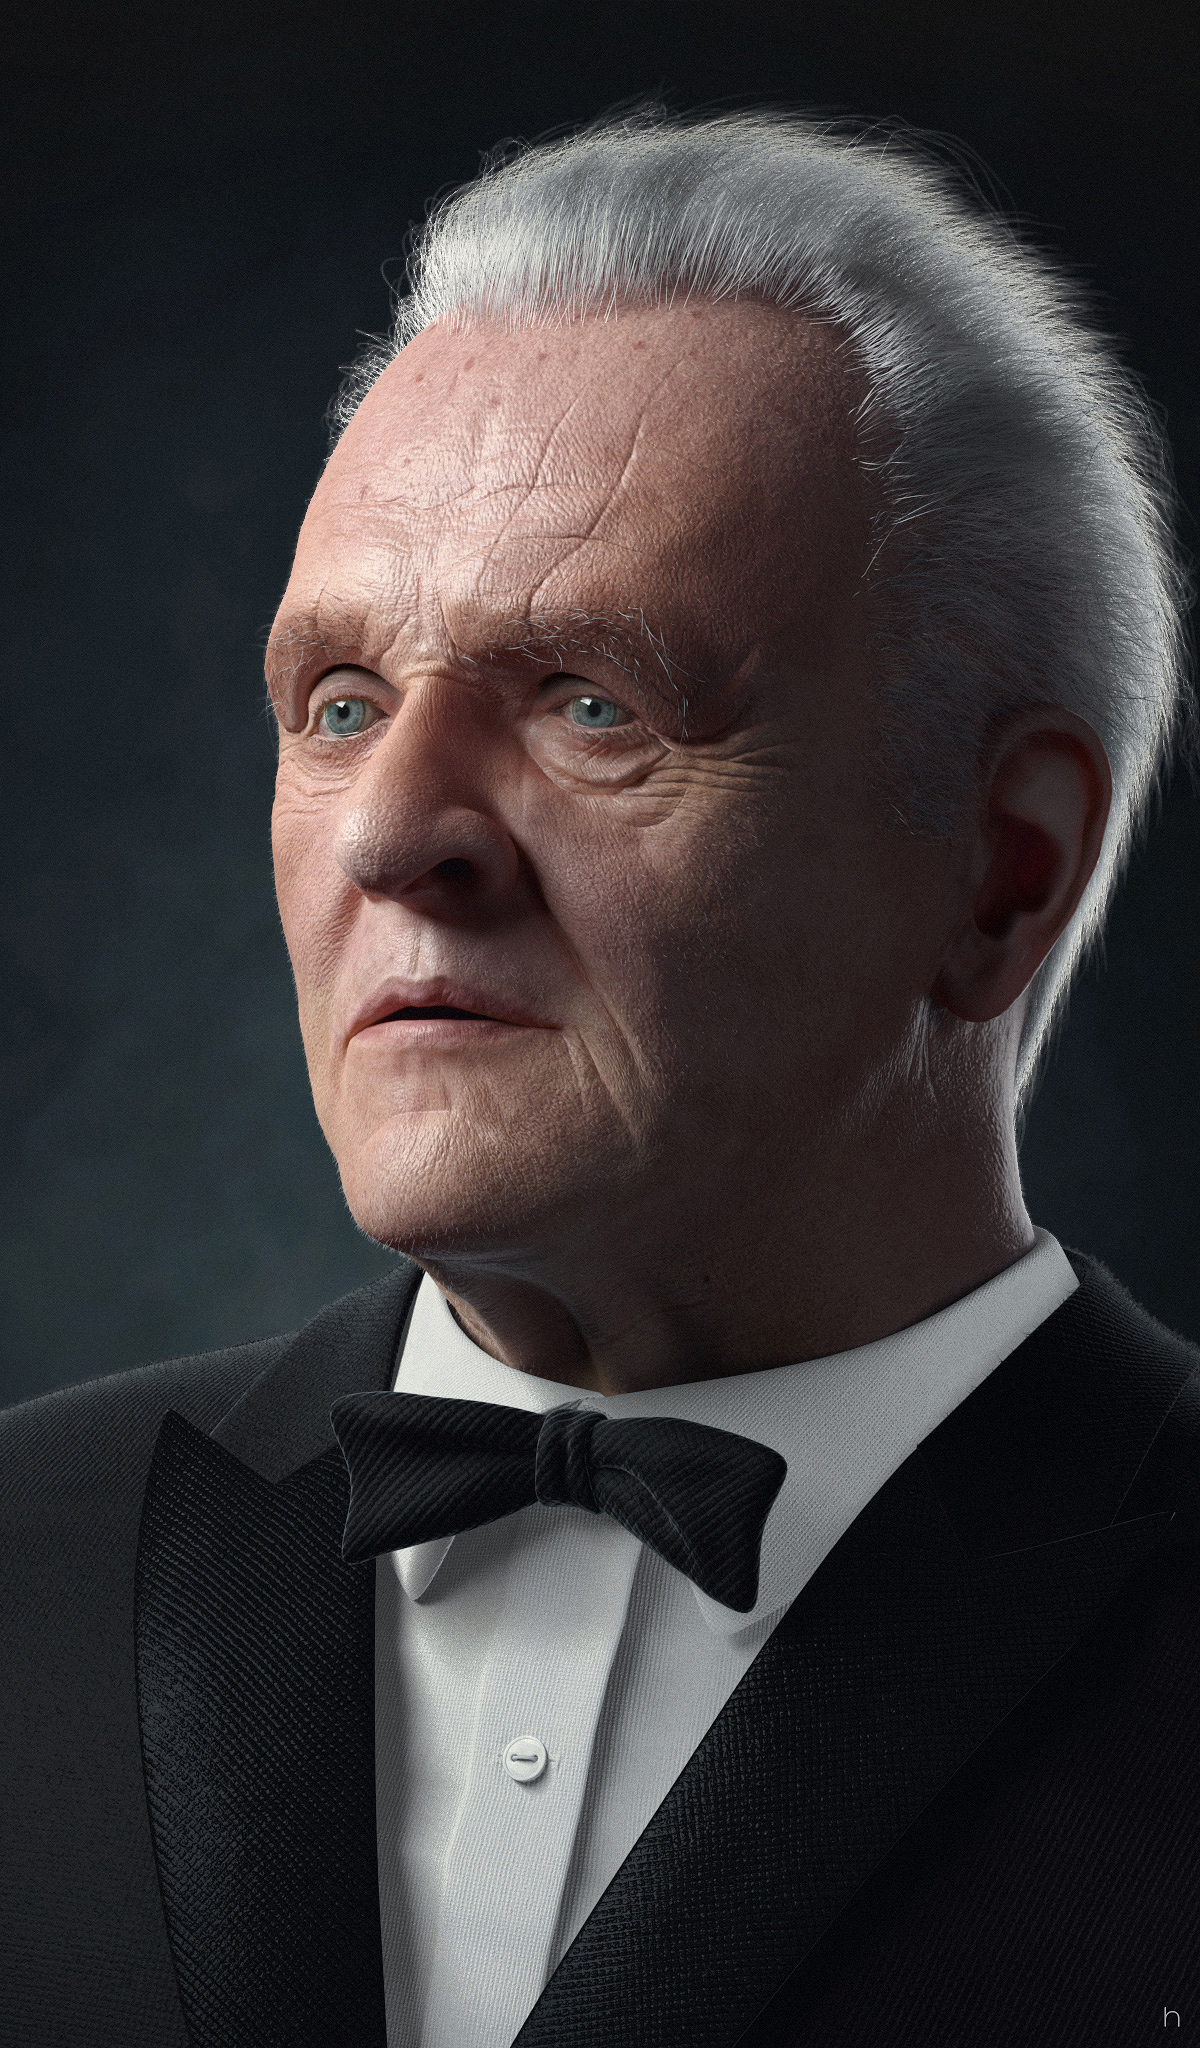 anthony_hopkins_by_hossimo_side.jpg